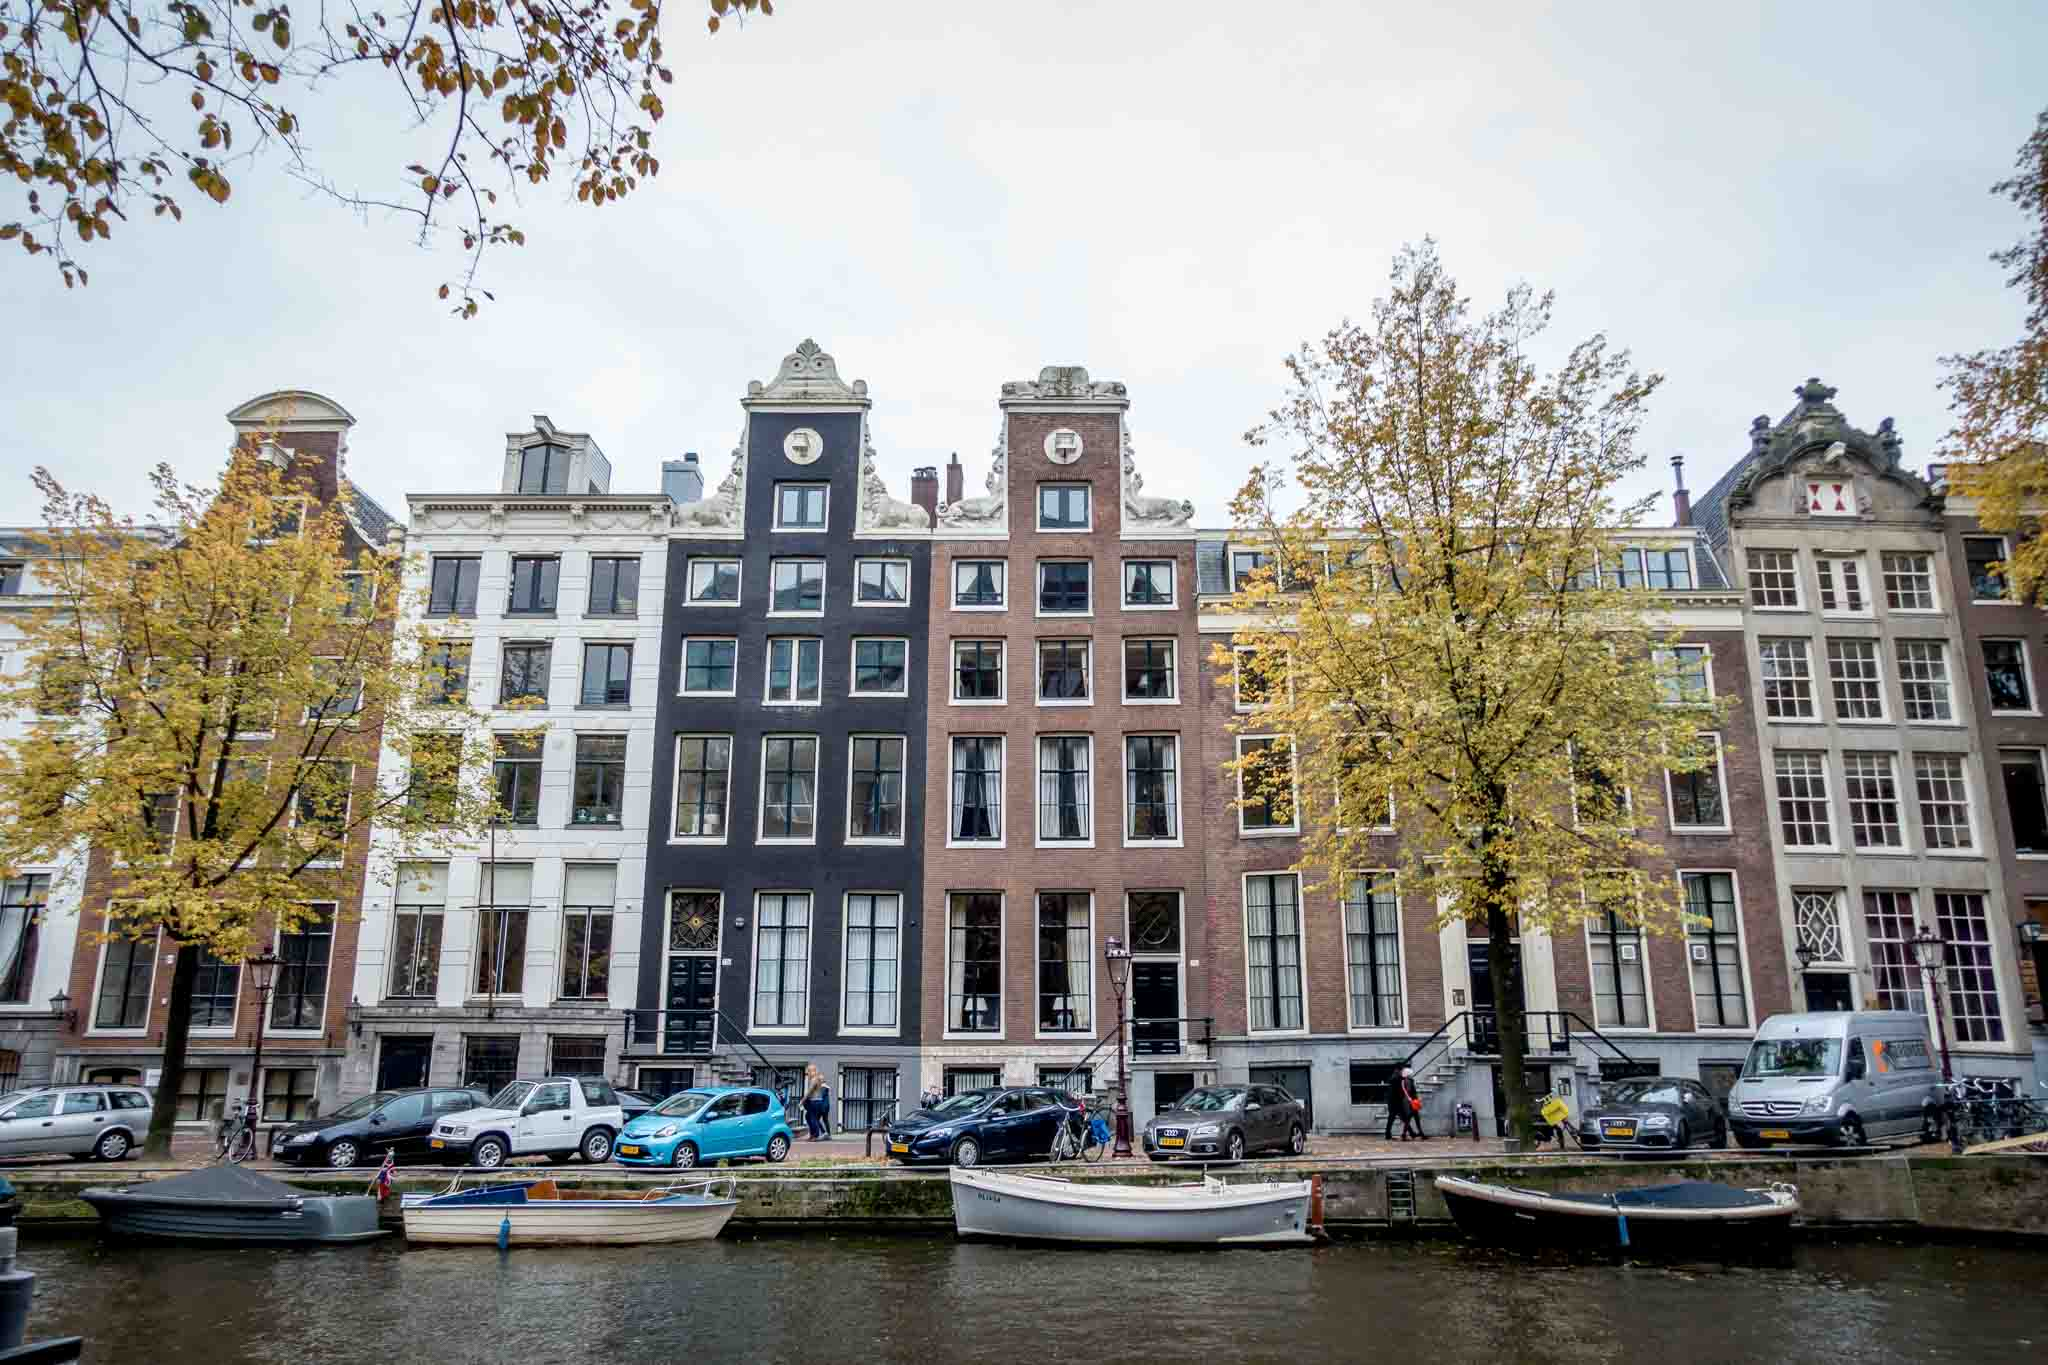 Historic canal houses along a boat-filled canal